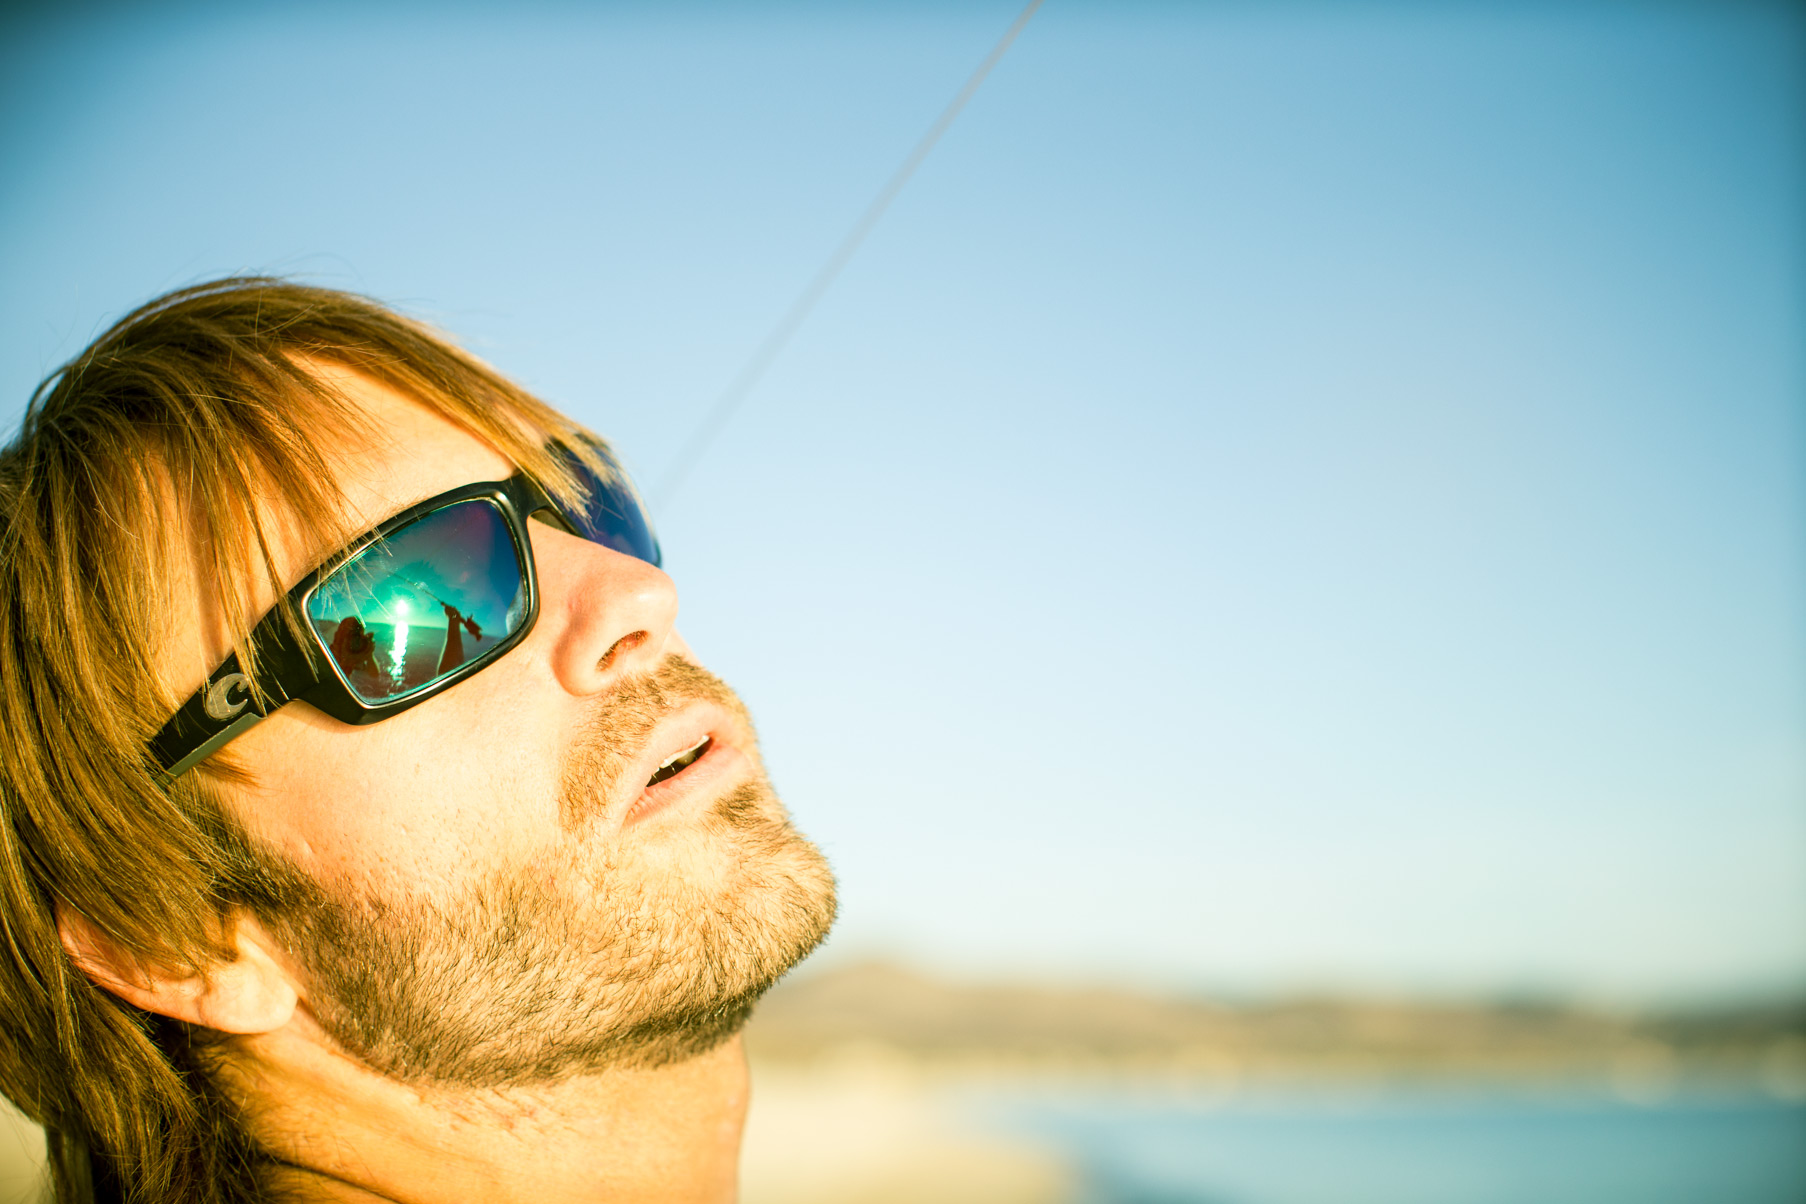 costa-sunglasses-photo-shoot-mexico-9447